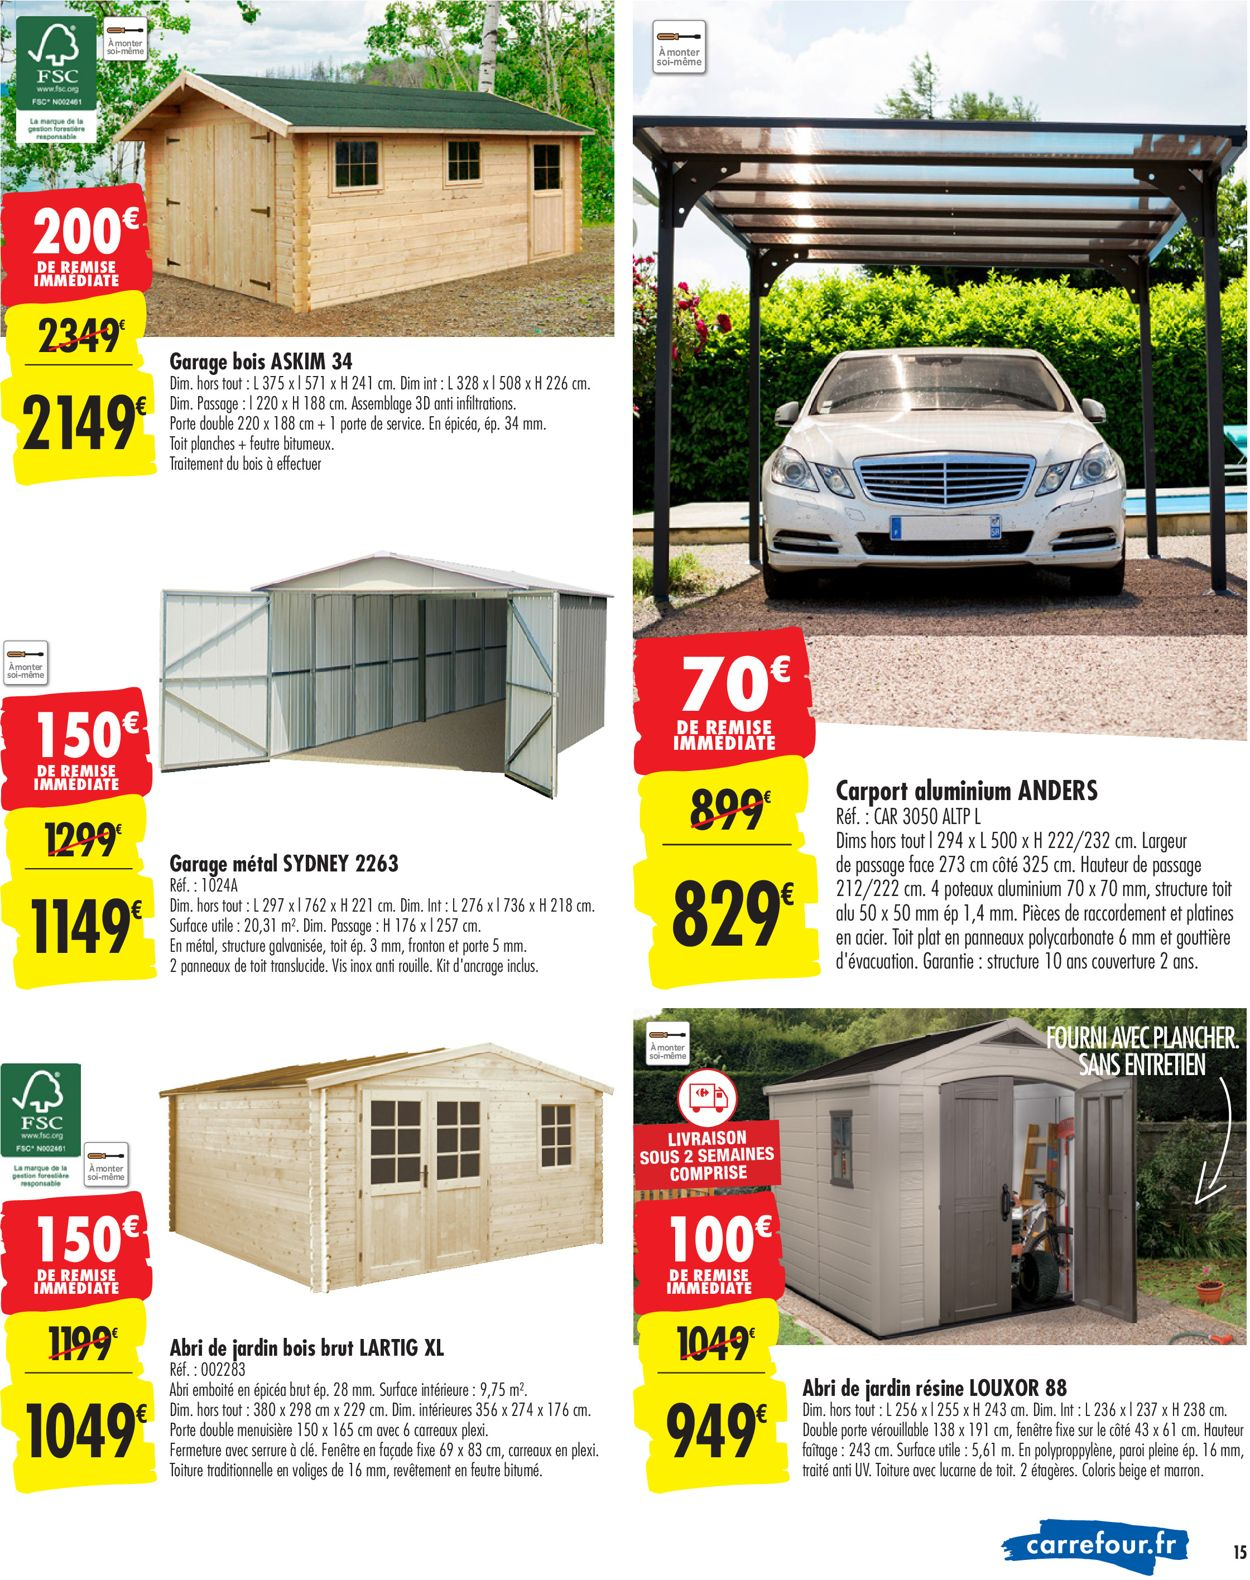 Carrefour Catalogue Actuel 24.09 - 14.10.2019 [15 serapportantà Abri De Jardin Carrefour